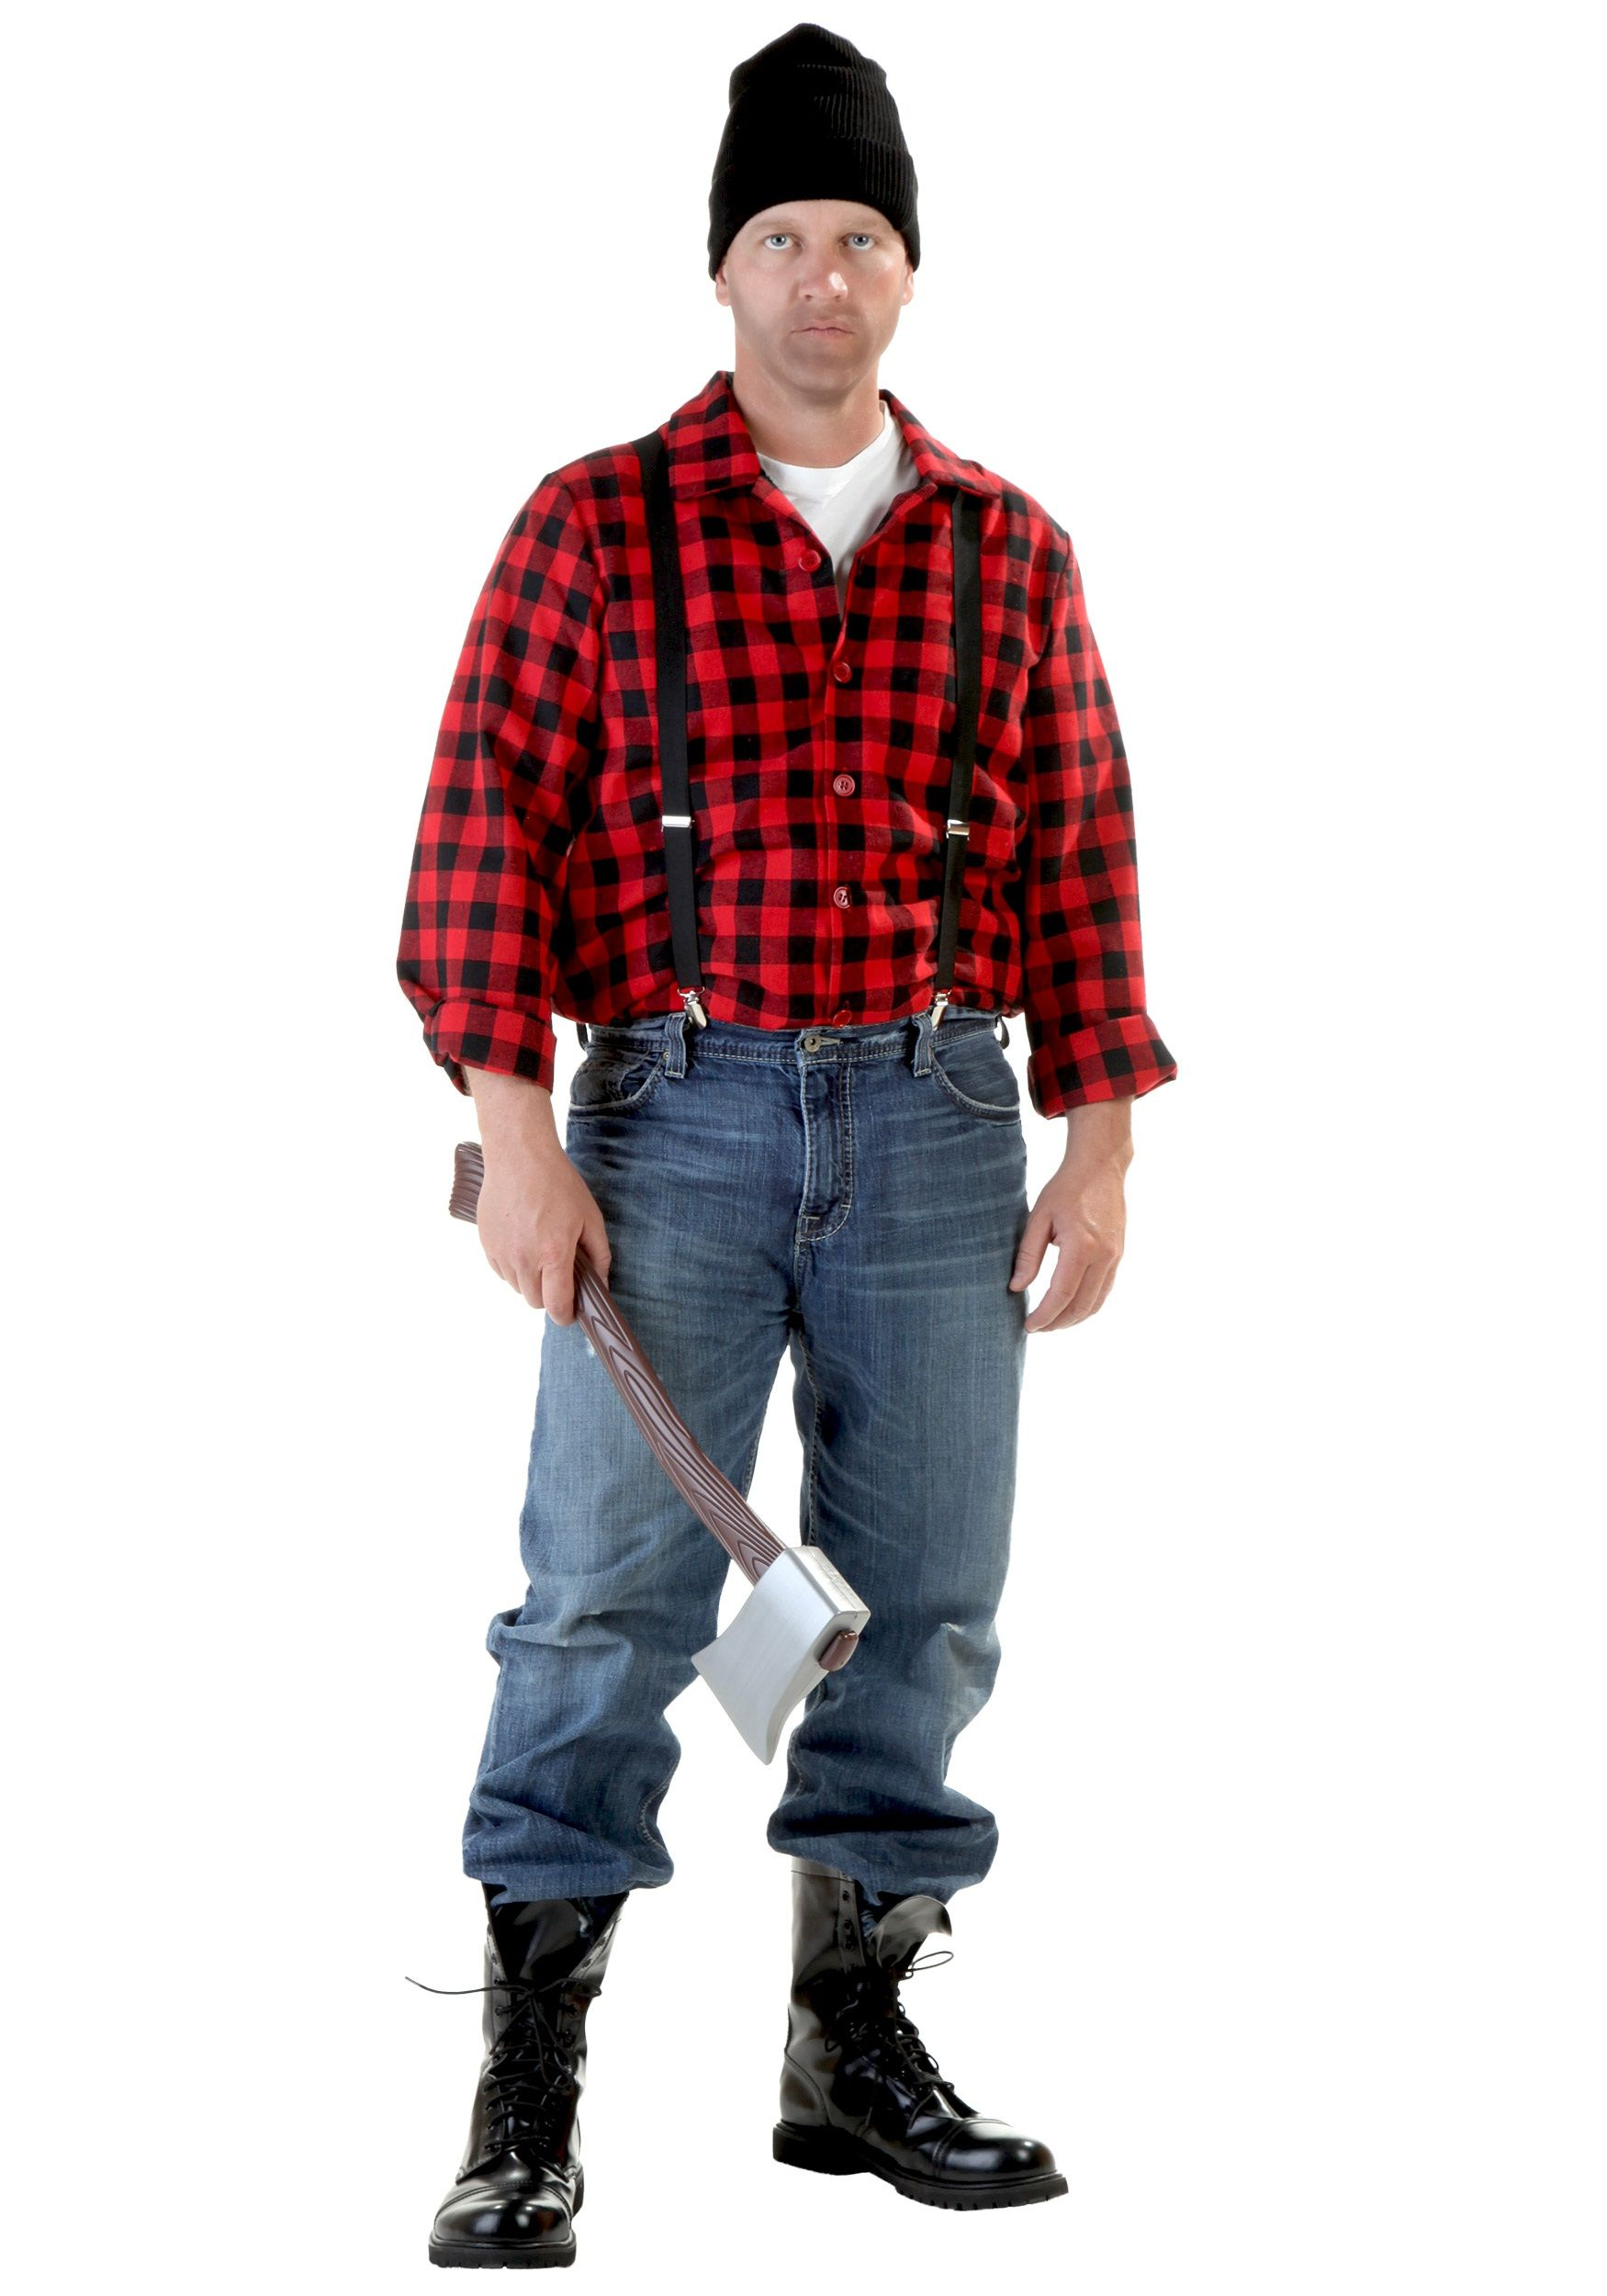 a brawny lumberjack in this exclusive costume for